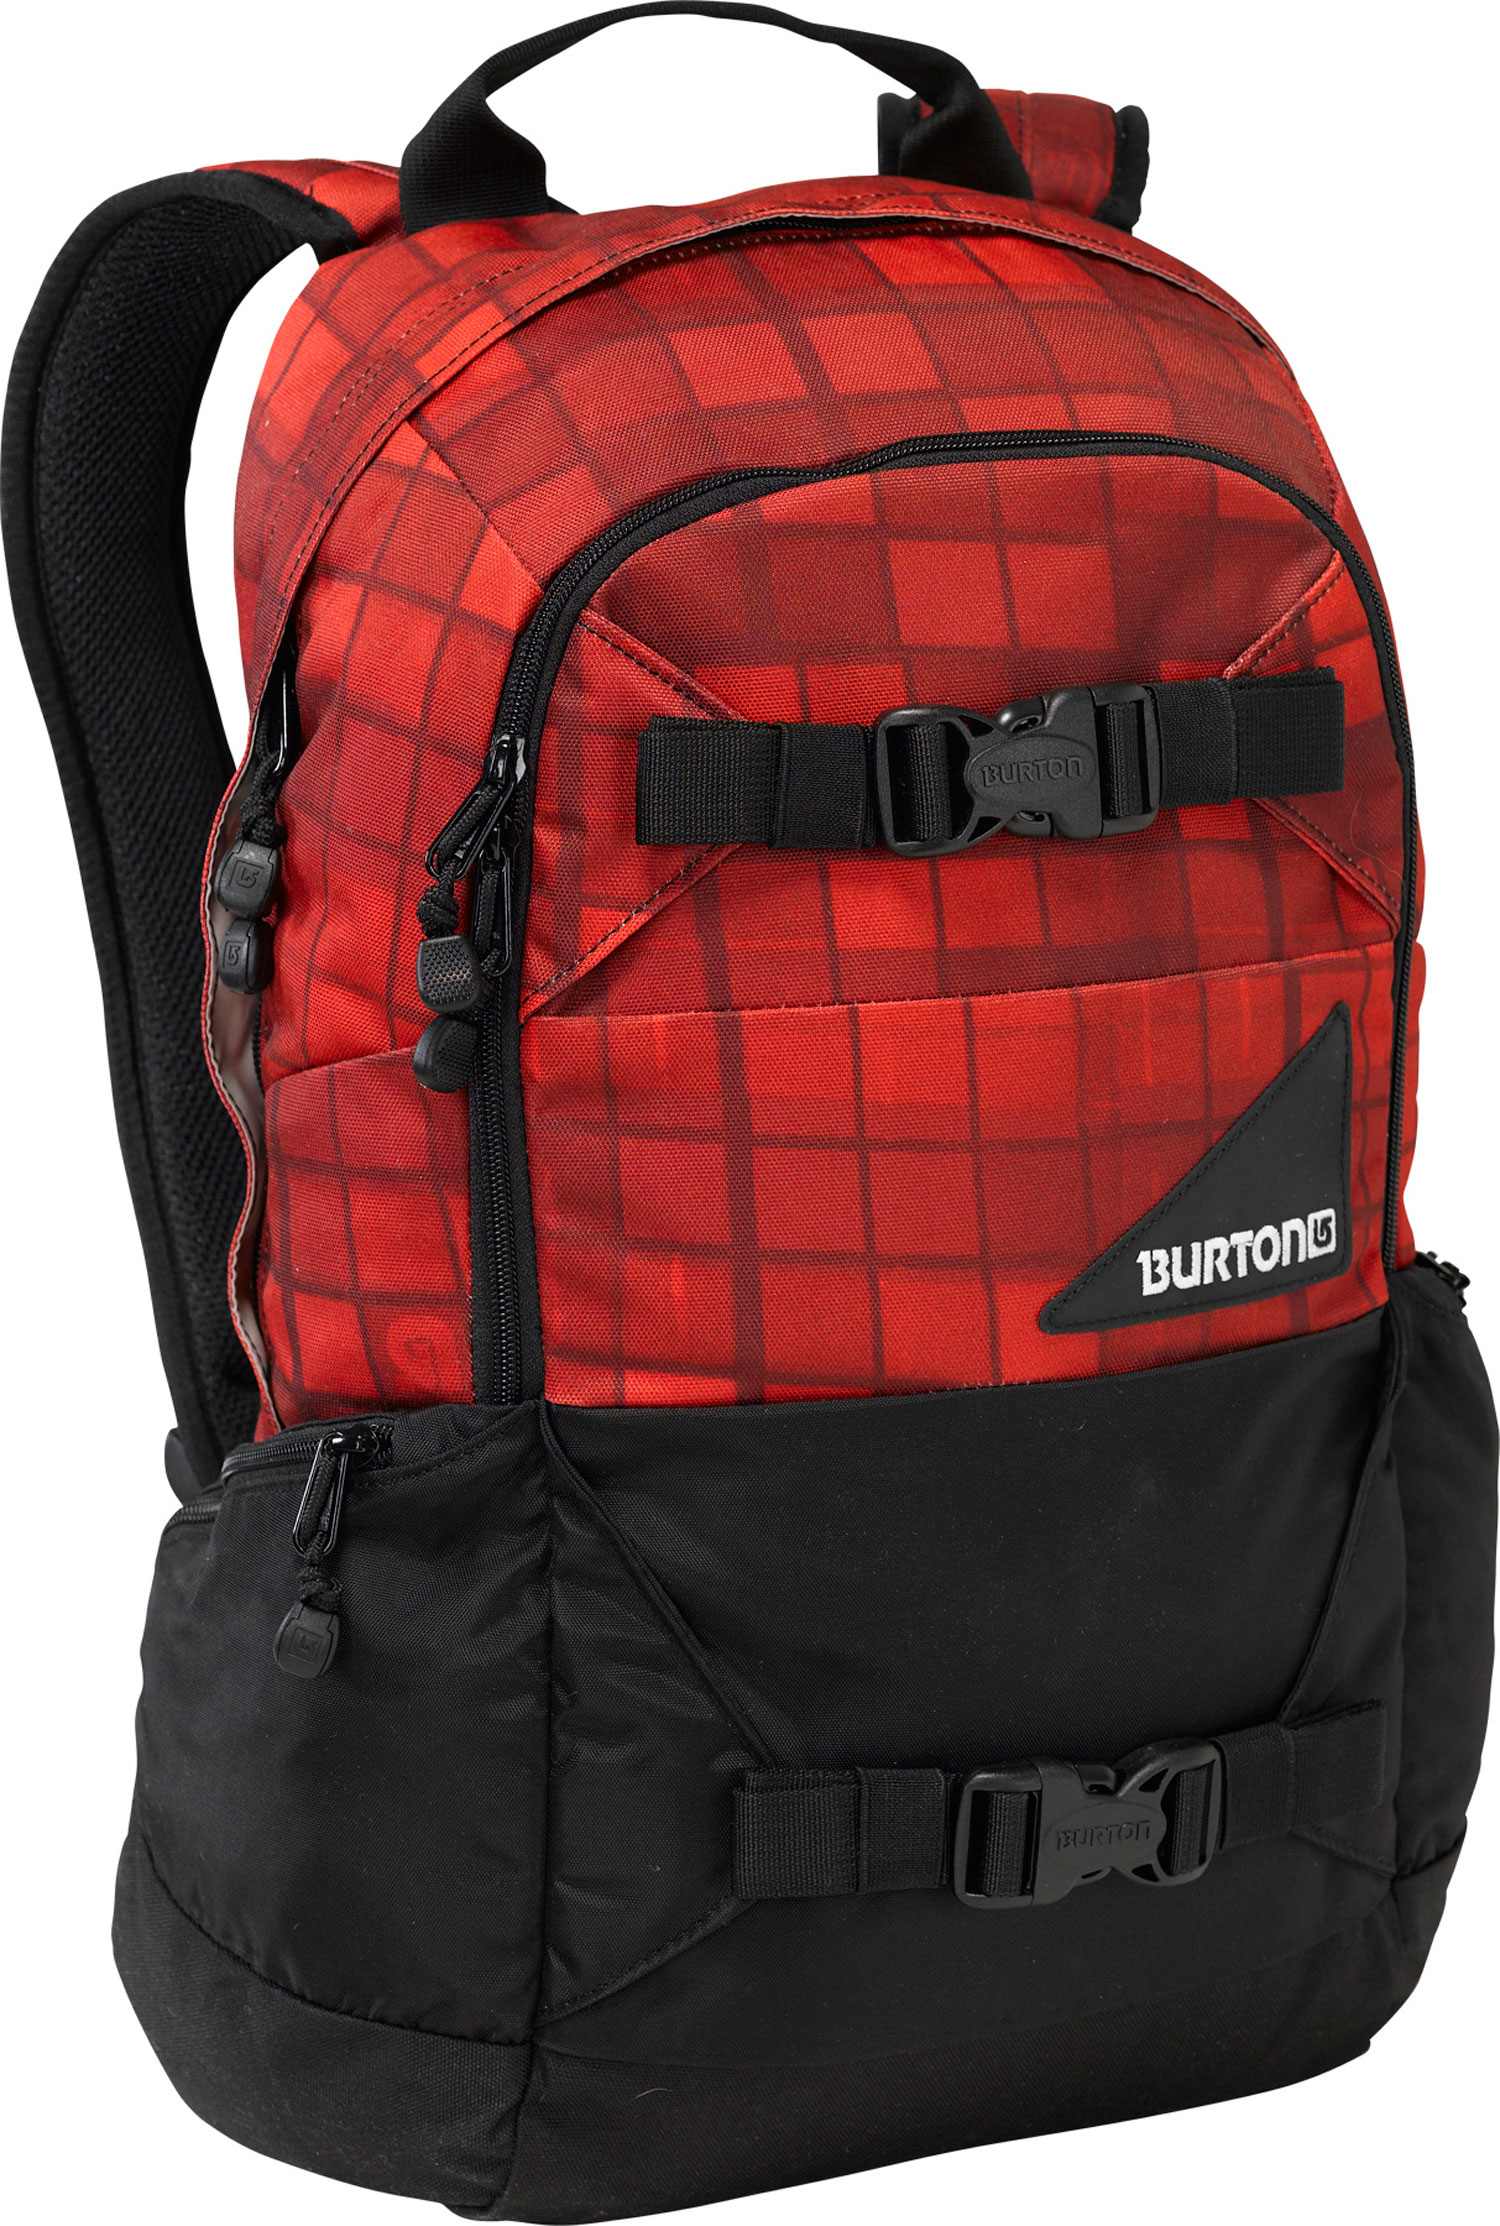 Camp and Hike Versatile, dependable, and durable,ready for any on or off-snow adventure. Key Features of the Burton Day Hiker 20L Backpack: 20L [19in x 11in x 8in] [48cm x 28cm x 20cm] Weight: 1.9 lbs [0.86 kg] Fabrication: 420D High-Density Nylon / 600D Polyester Cush Ergonomic Shoulder Harness and Ergonomic Back Panel Vertical Board Carry Easy Access Internal Shovel Storage Pocket Fleece-Lined Goggle / Sound Pocket Hydration Compatible Waist Strap - $38.95